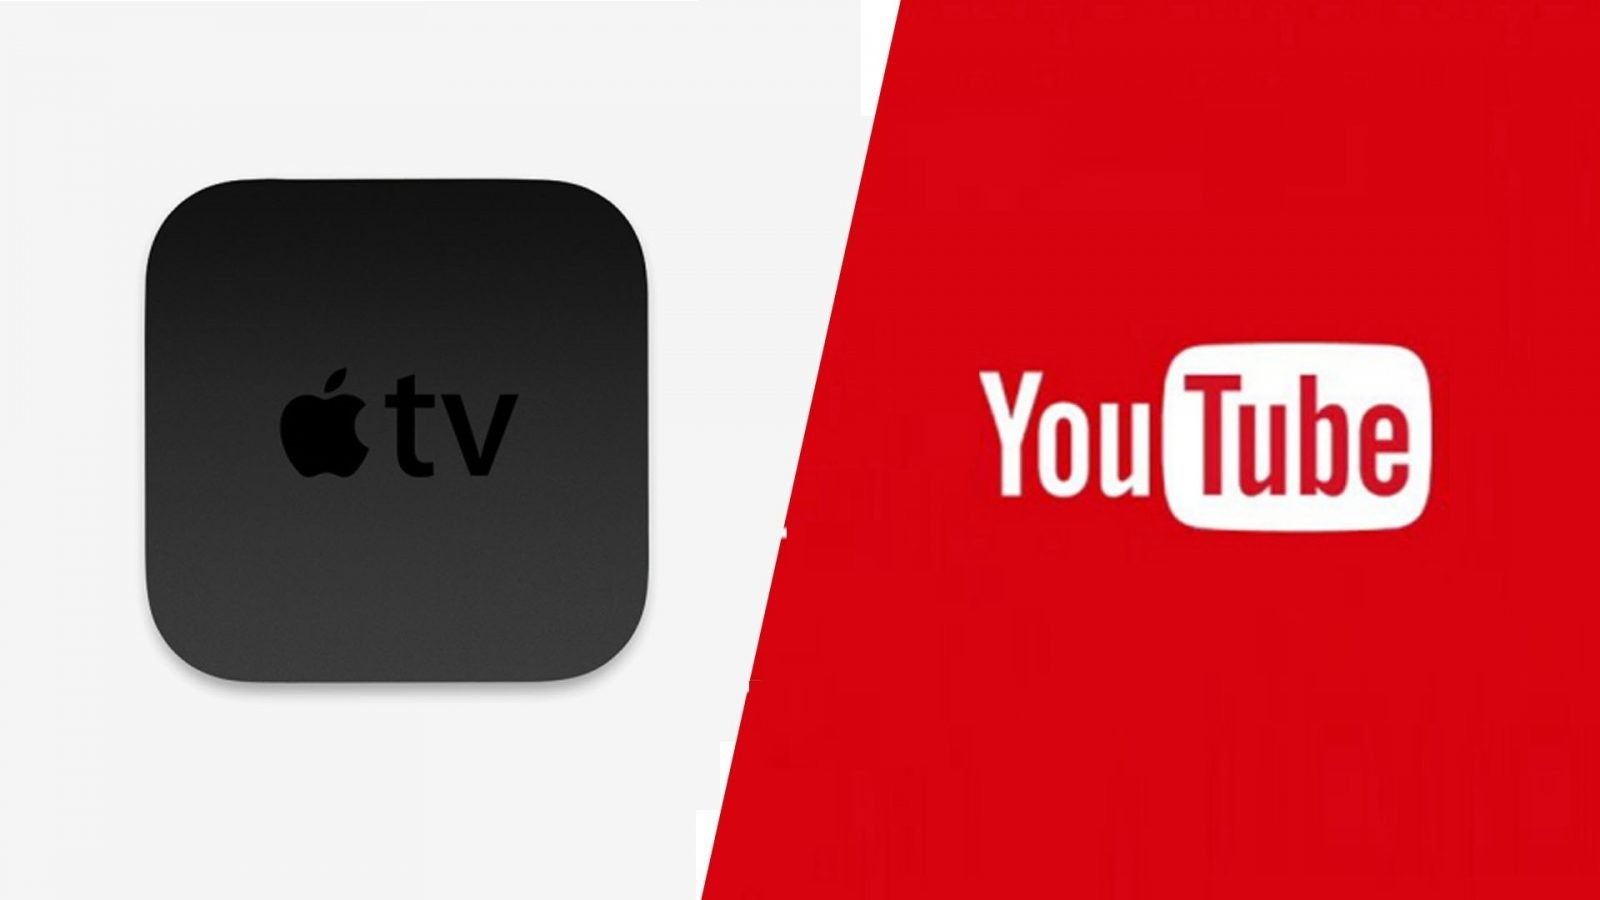 How to Install and Watch YouTube on Apple TV